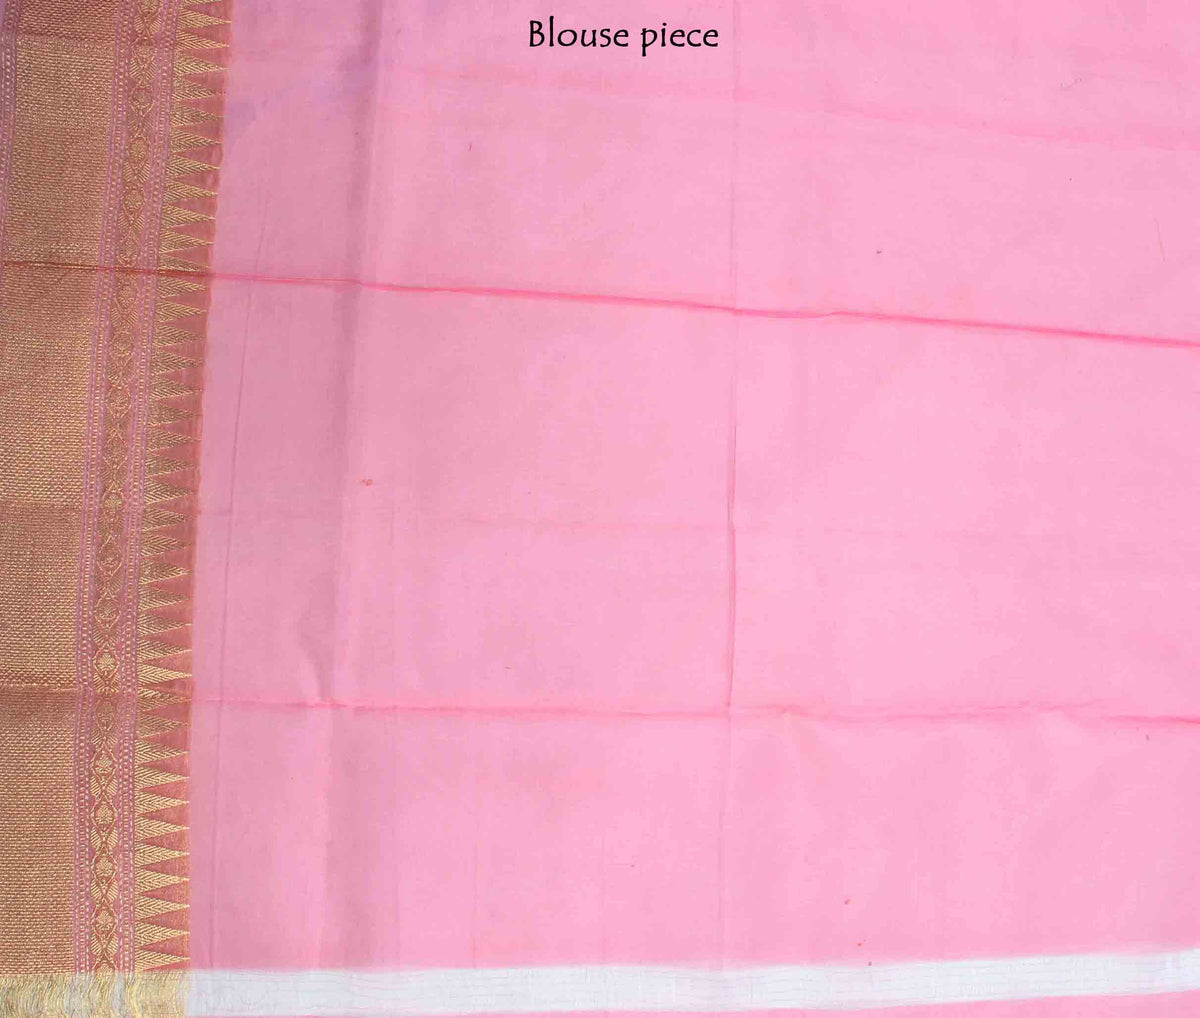 Peach Kora Banarasi saree with resham floral jaal (4) blouse